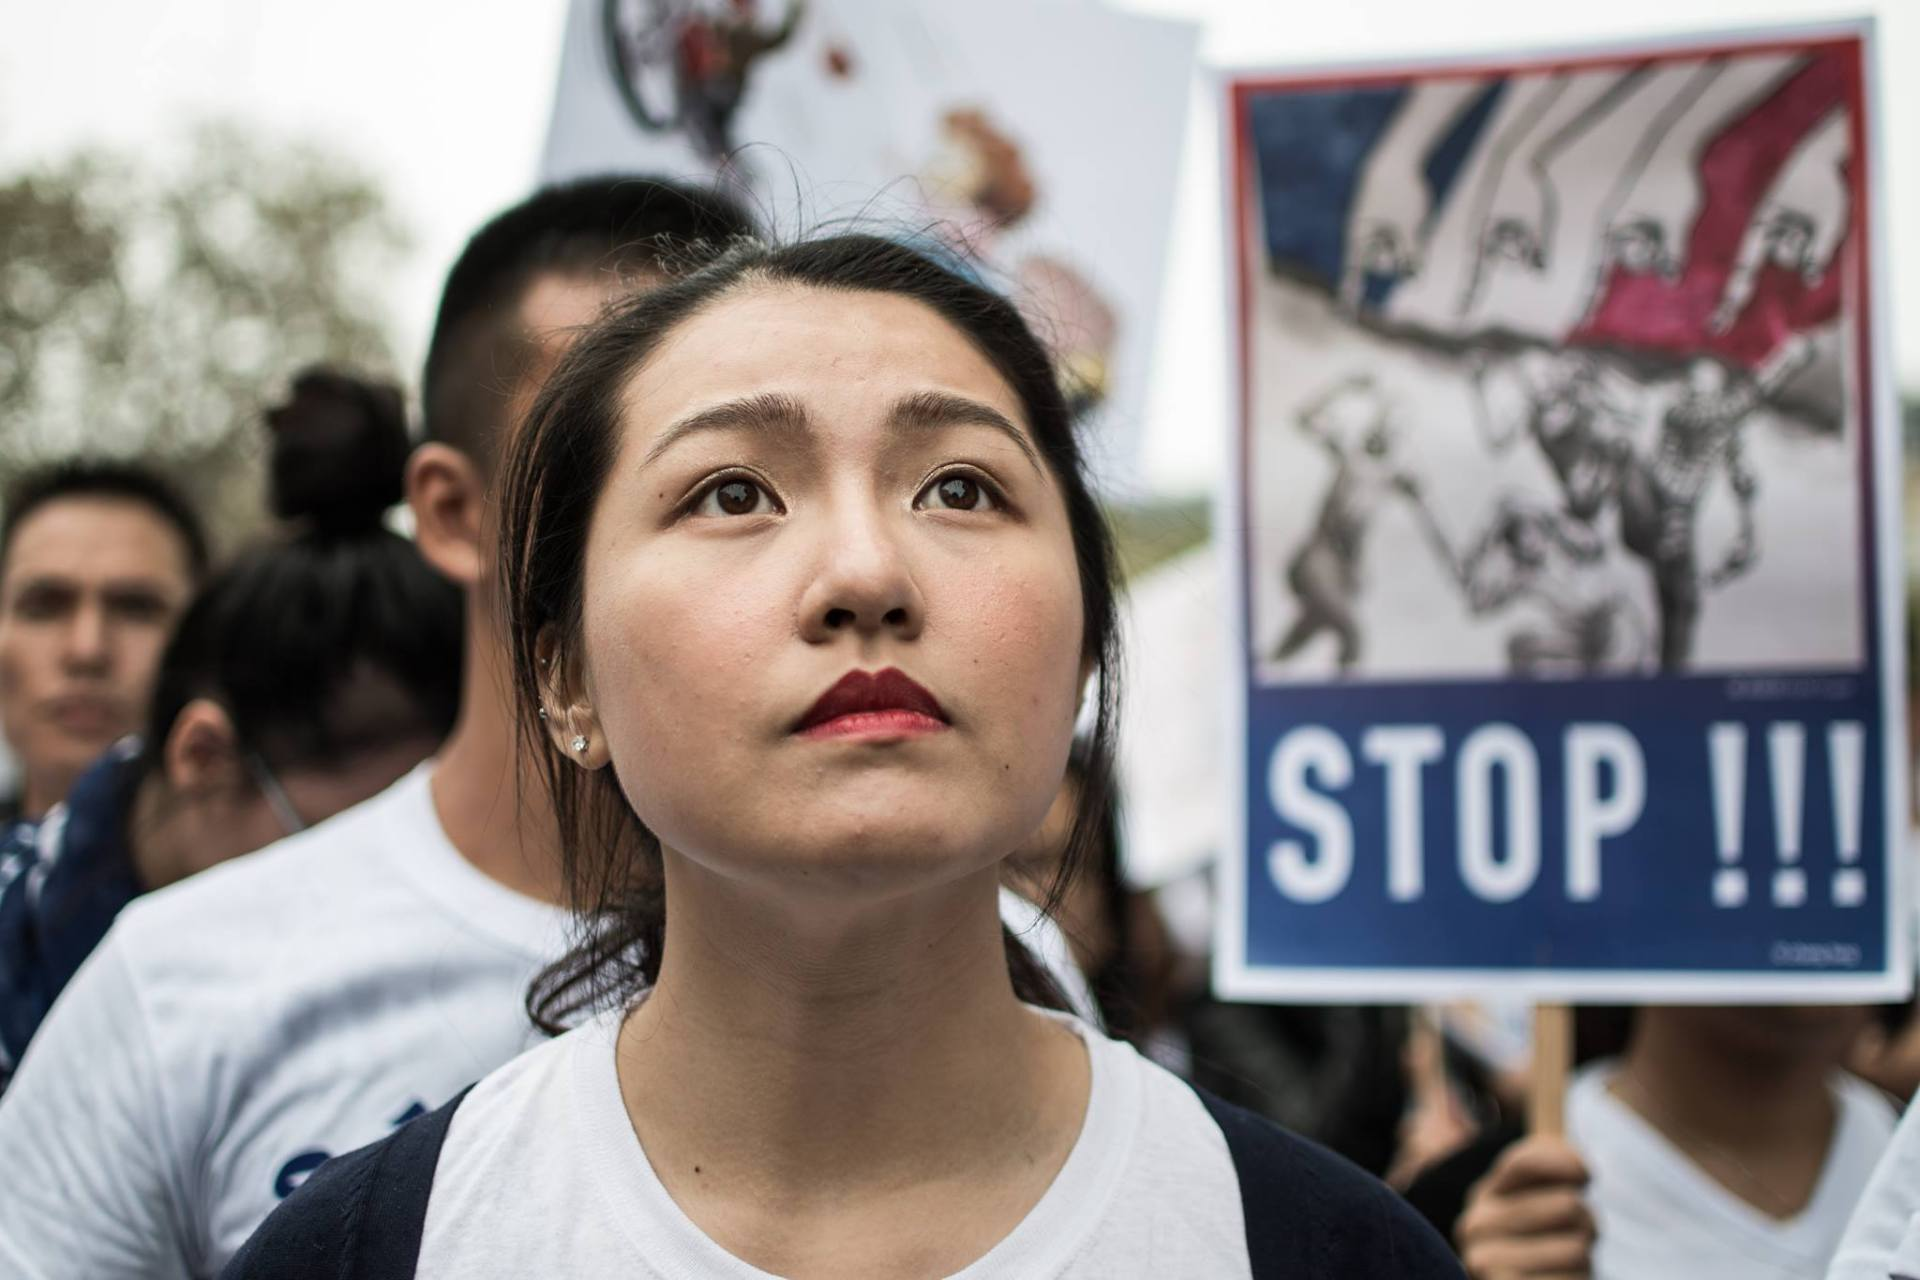 The protest of Chinese of Paris